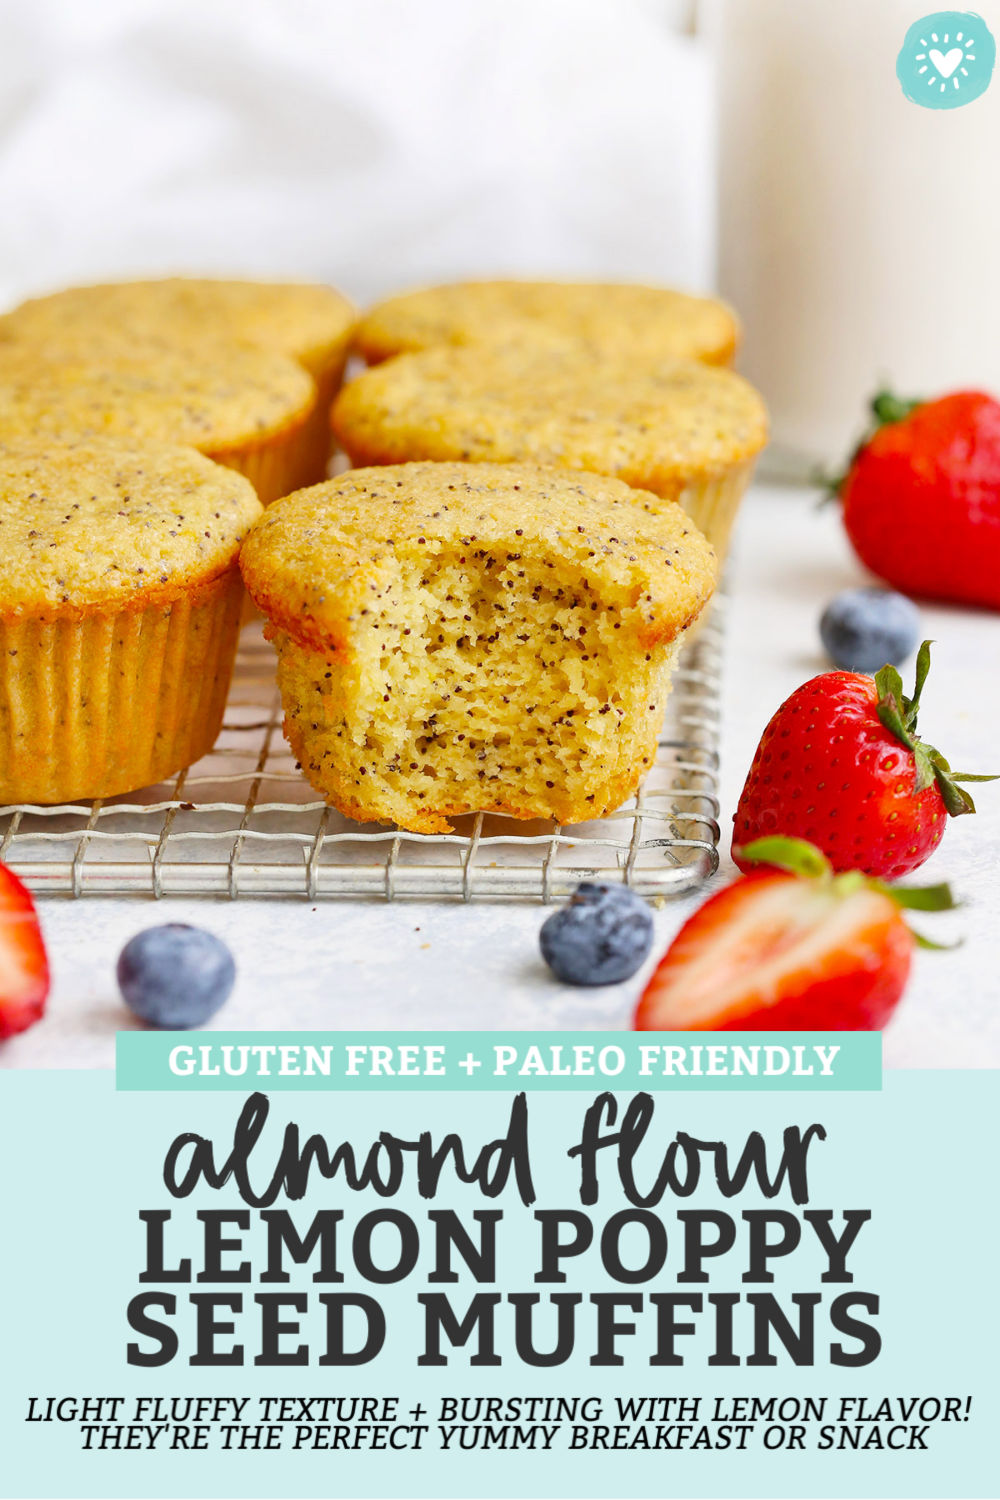 Almond Flour Lemon Poppy Seed Muffins - These gluten-free lemon poppy seed muffins have a light, fluffy texture and are BURSTING with lemon flavor. They're the perfect yummy breakfast or snack! // Paleo Lemon Poppy Seed Muffins // Gluten Free Lemon Poppy Seed Muffins #muffins #almondflour #lemon #poppyseed #paleo #glutenfree